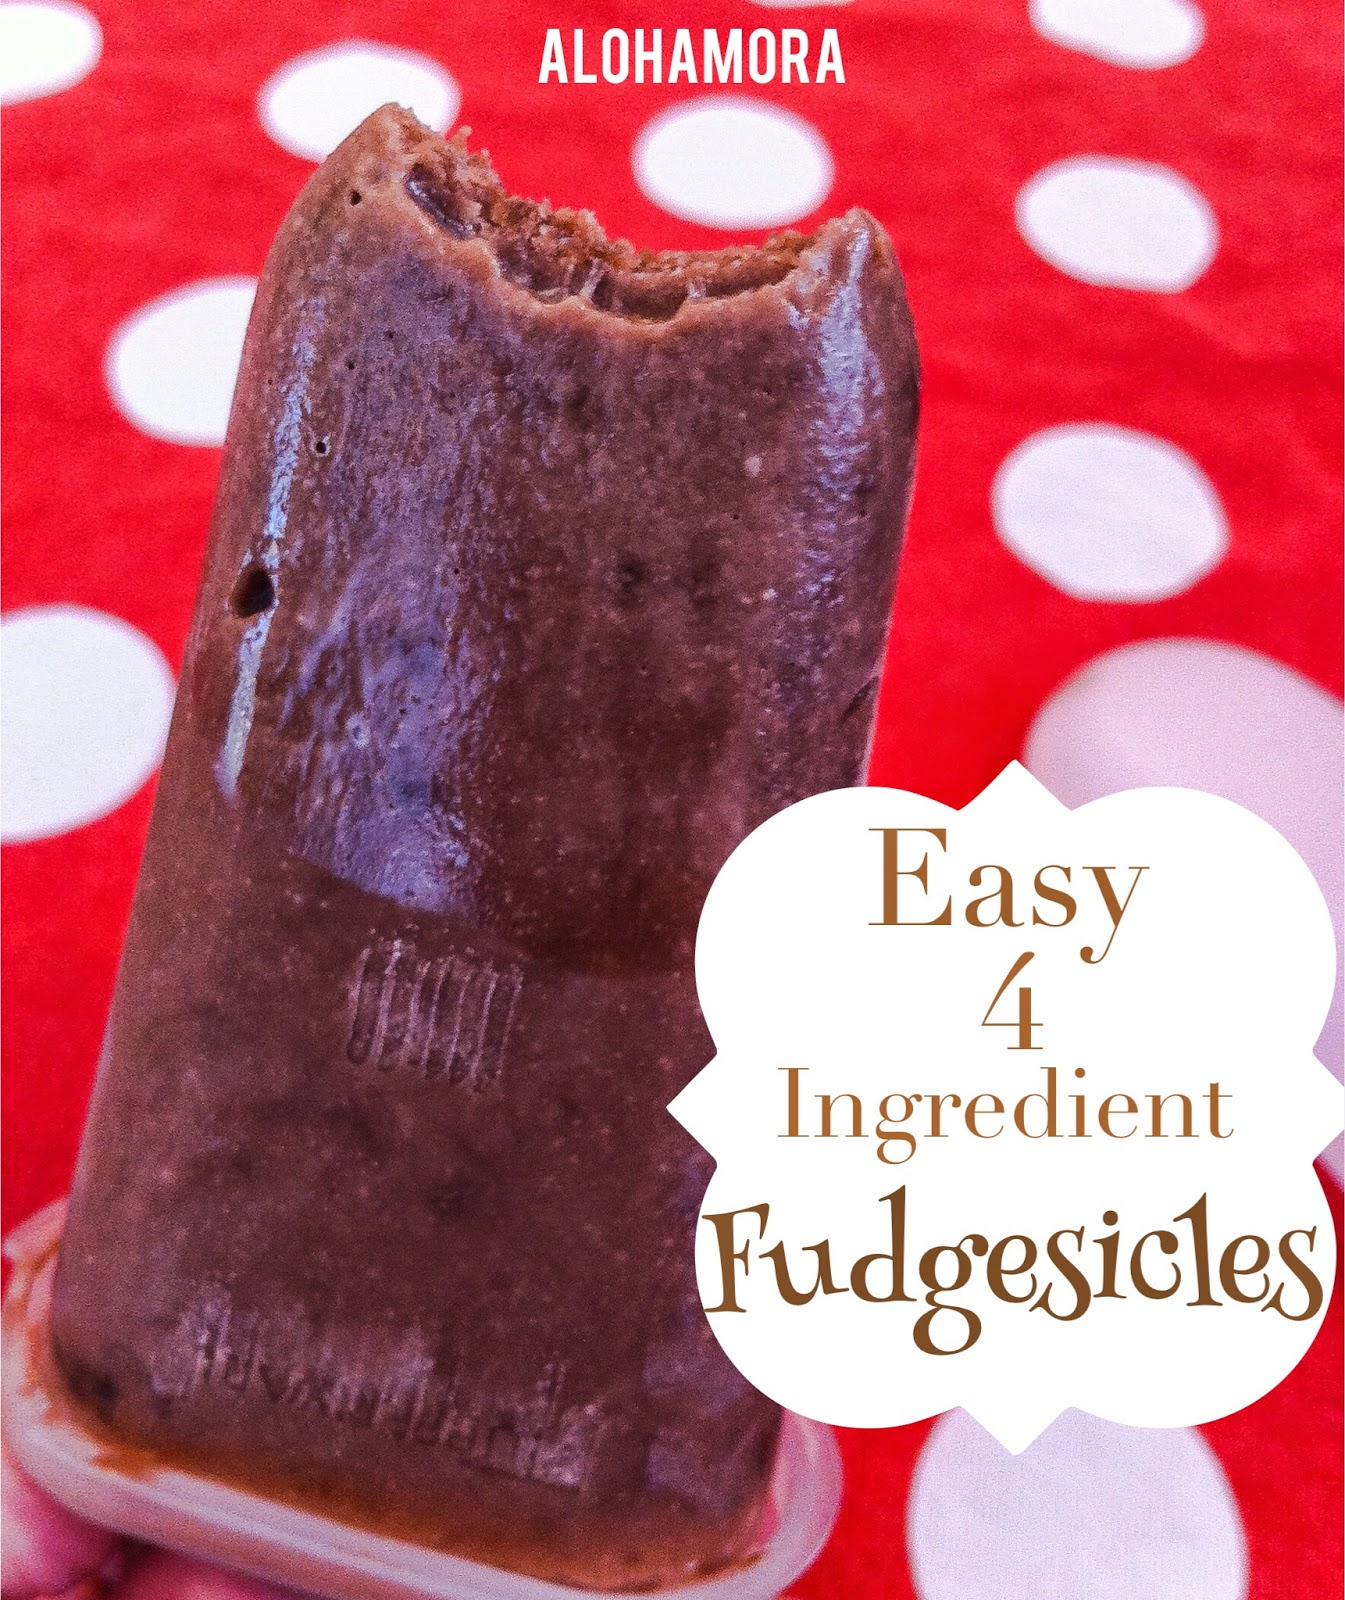 Easy Homemade 4 Ingredient Fudgesicles.  Creamy, delicious, and so so easy and simple to make kids can help with it.  Perfect Summer Treat. Alohamora Open a Book http://alohamoraopenabook.blogspot.com/